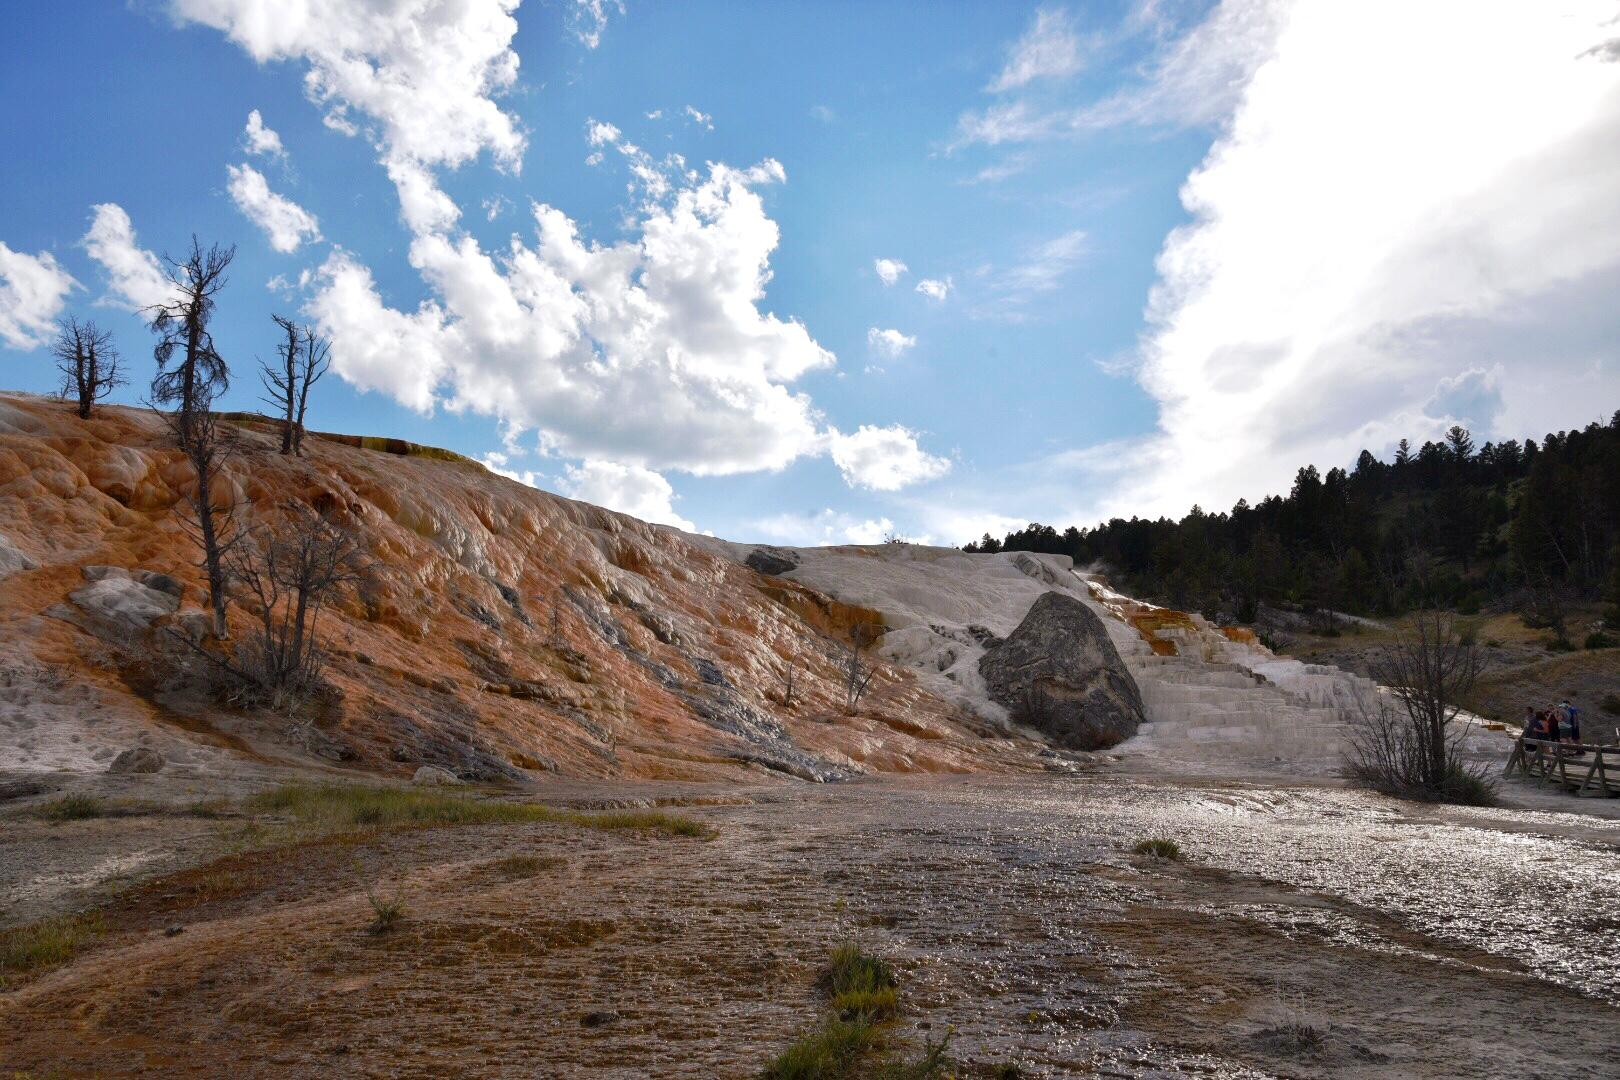 The Mammoth Hot Springs terraces are ever changing. The colors range from pure white to deep oranges to everything in between. (Image: Rebecca Mongrain/Seattle Refined)